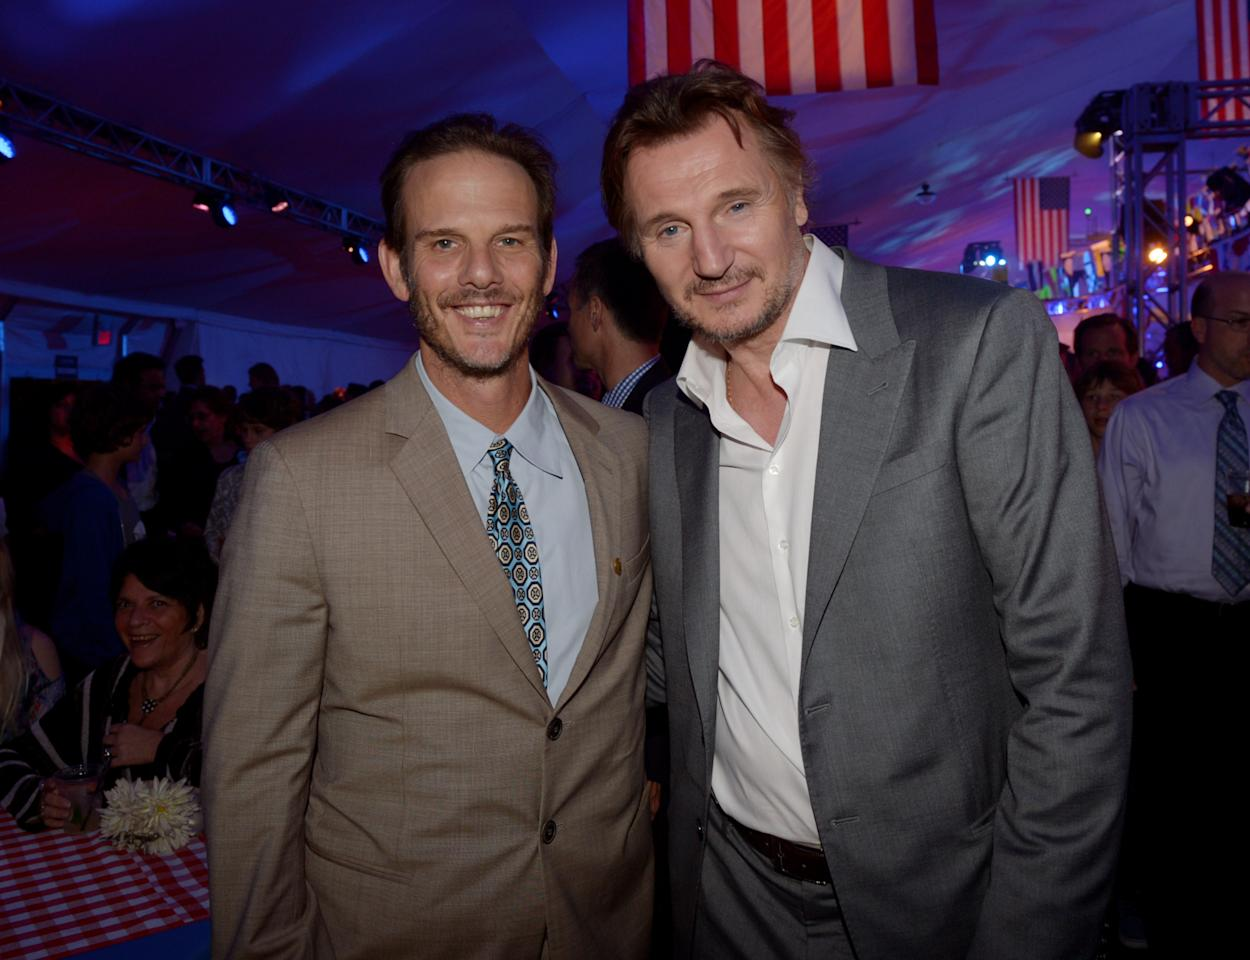 "LOS ANGELES, CA - MAY 10:  Producer/director Peter Berg (L) and actor Liam Neeson pose at the after party for the premiere of Universal Pictures' ""Battleship"" at L.A. Live on May 10, 2012 in Los Angeles, California.  (Photo by Kevin Winter/Getty Images)"